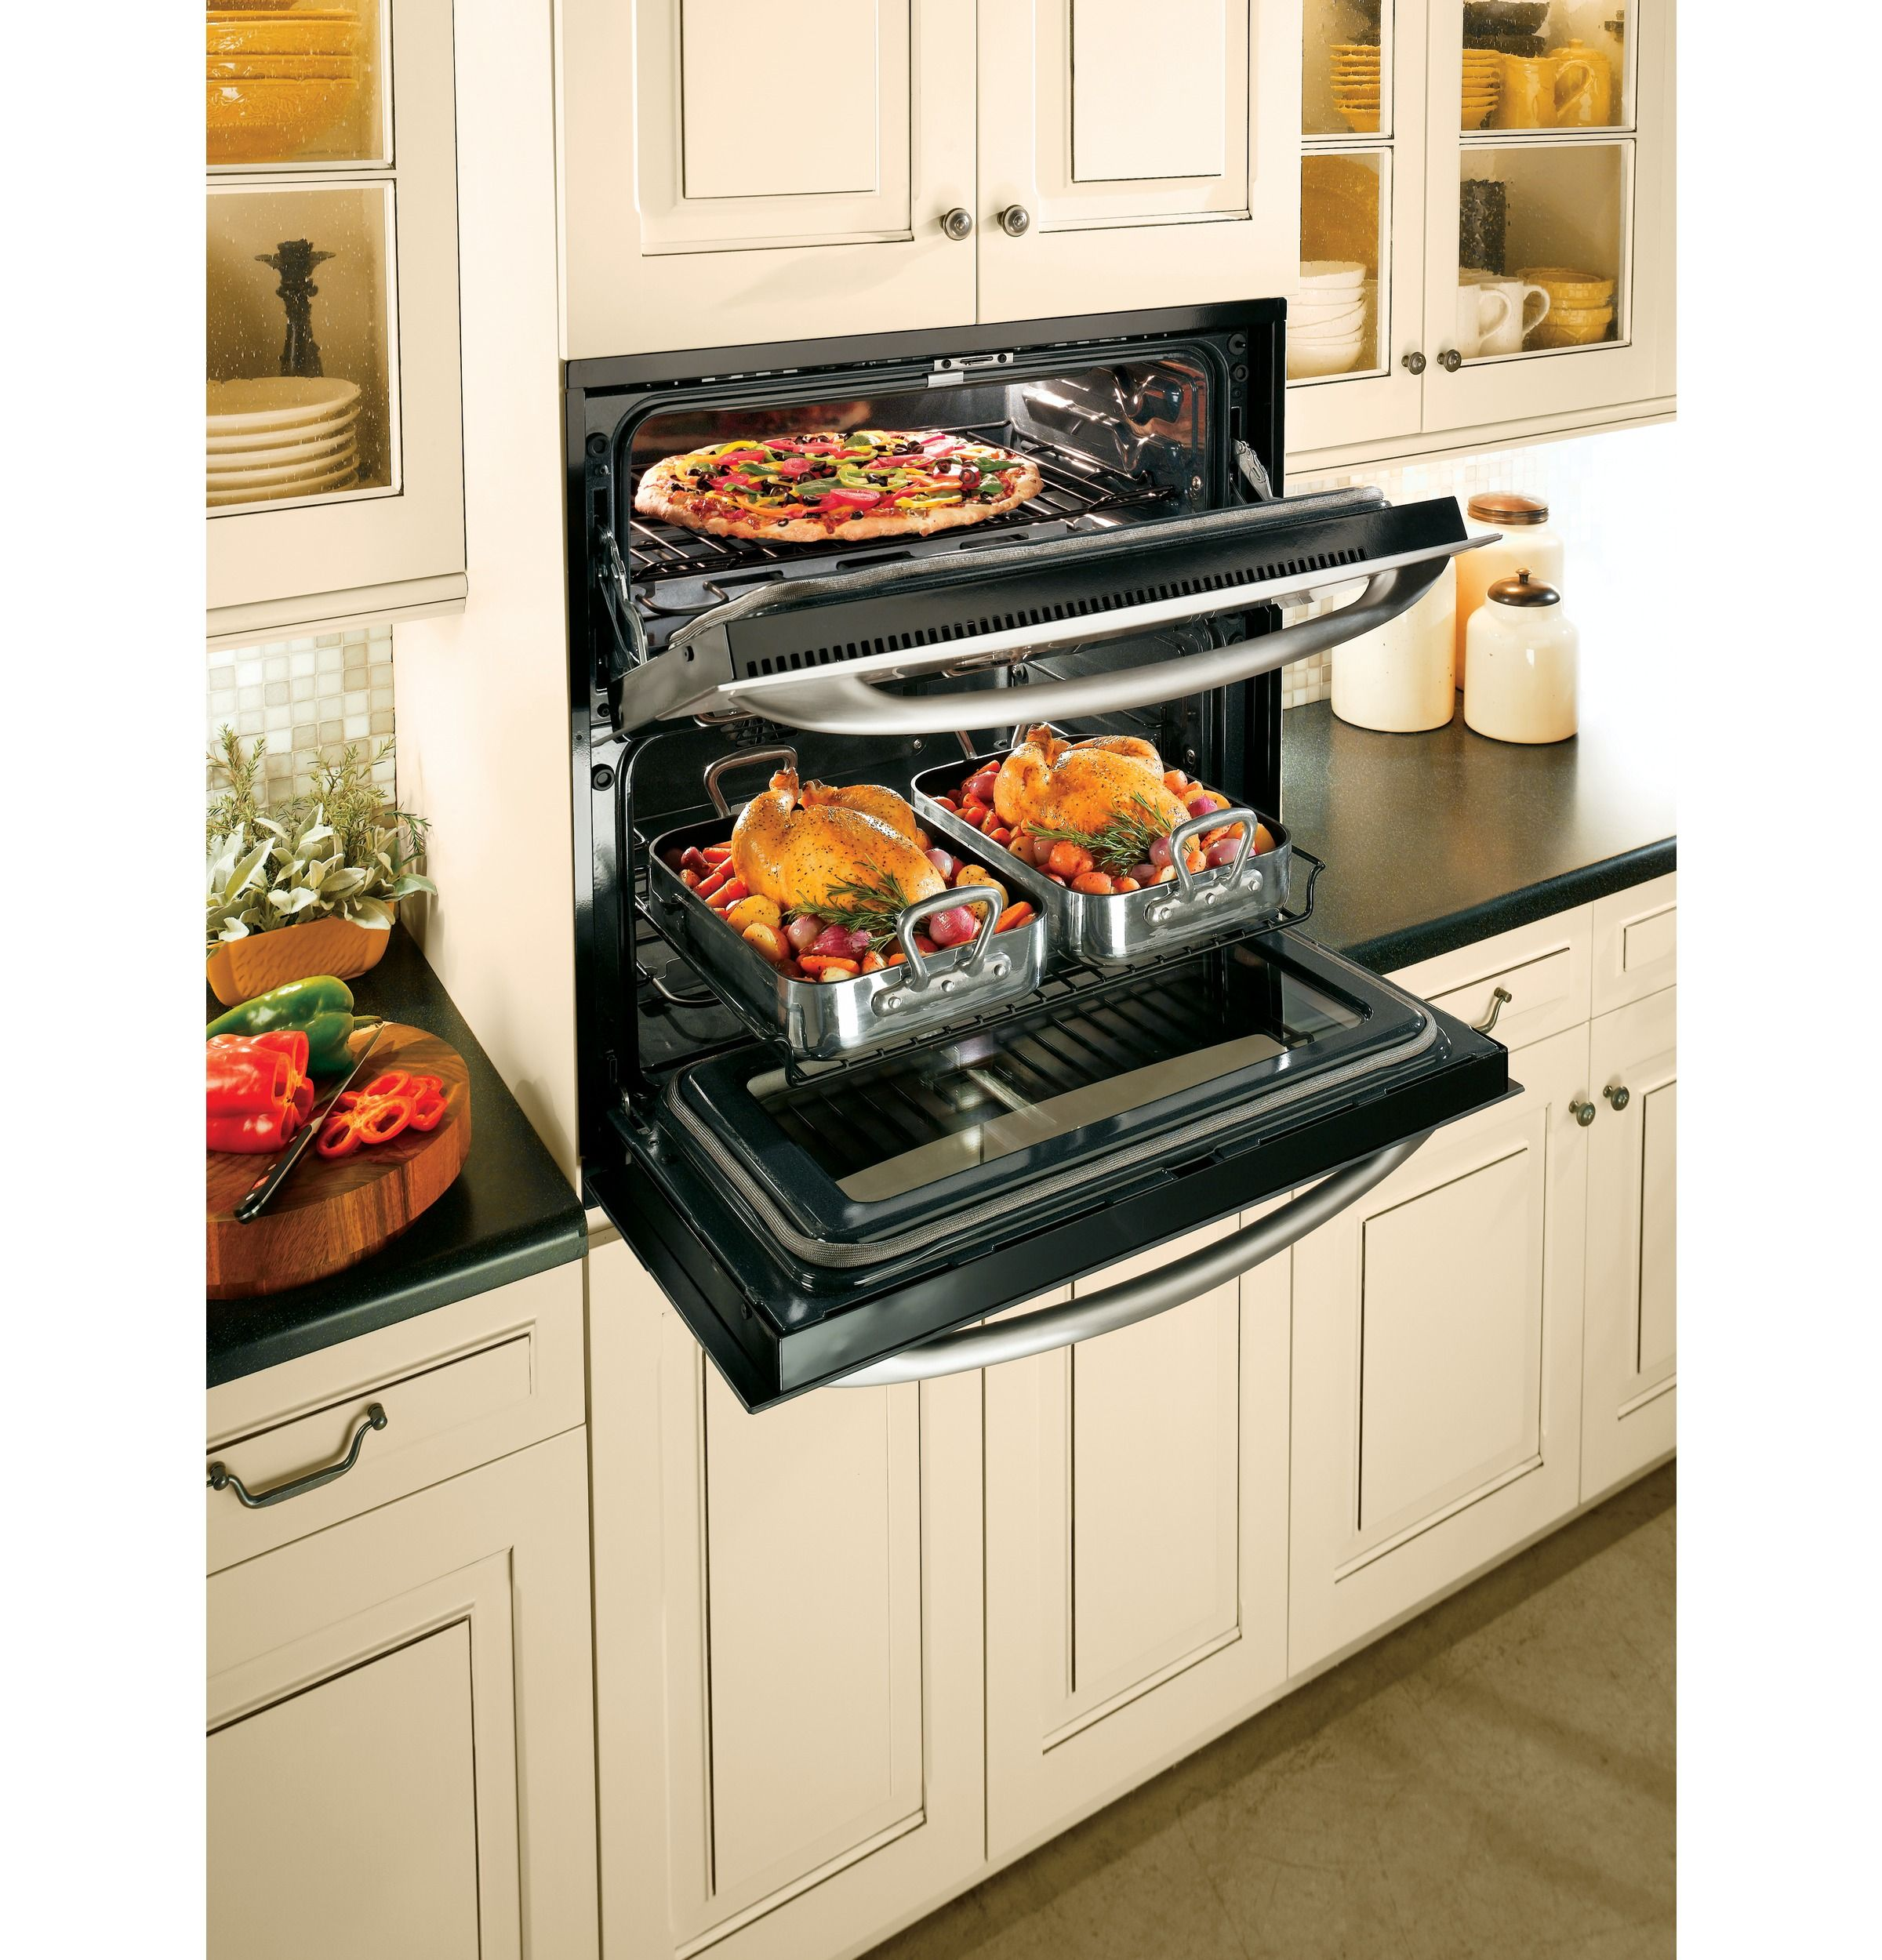 Double Oven In A Single Space Wall Oven Kitchen Wall Oven Outdoor Kitchen Appliances